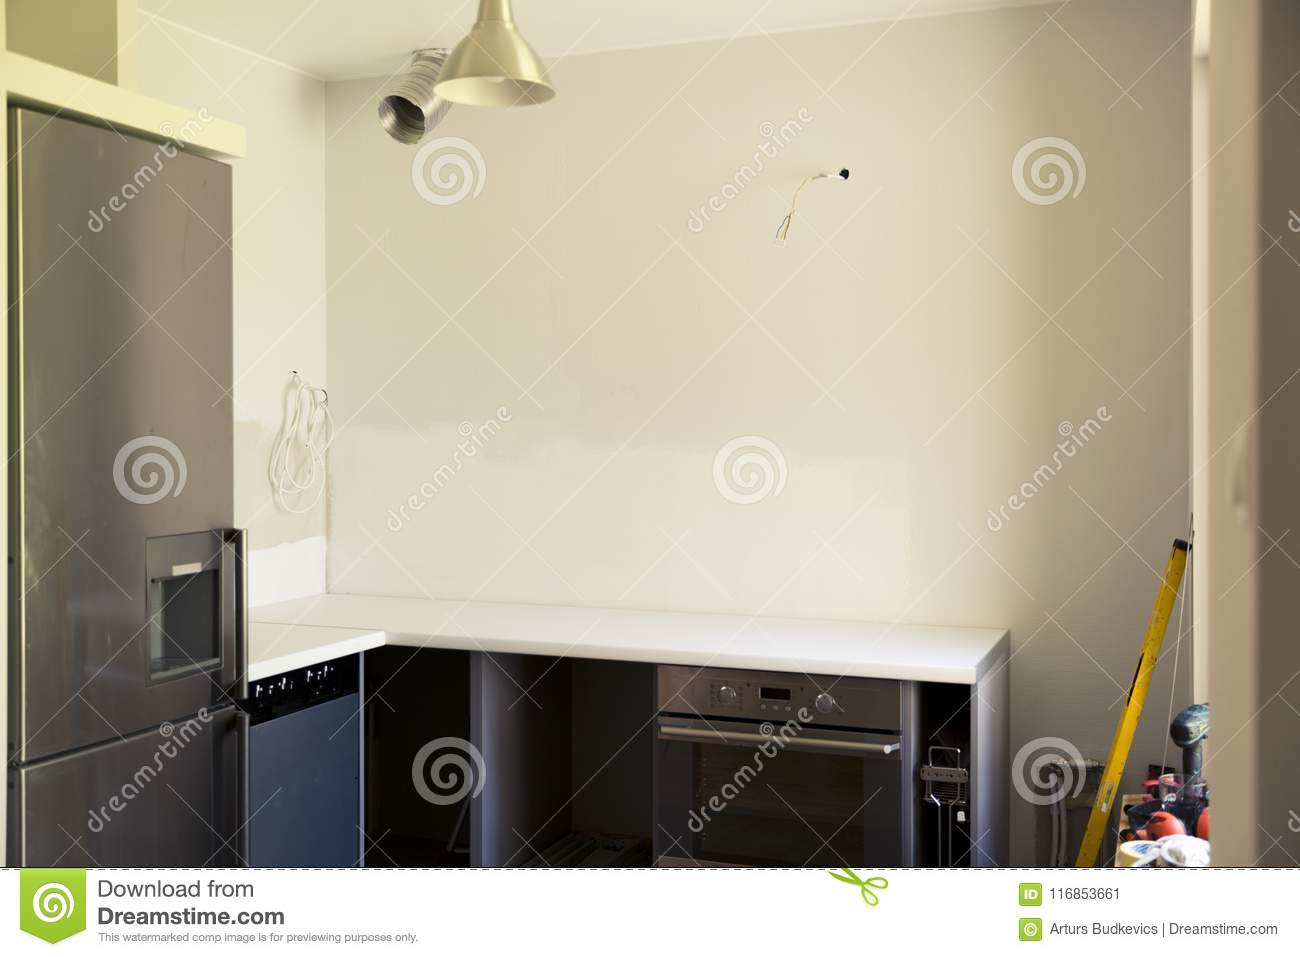 home and kitchen renovation. unfinished kitchen remodeling